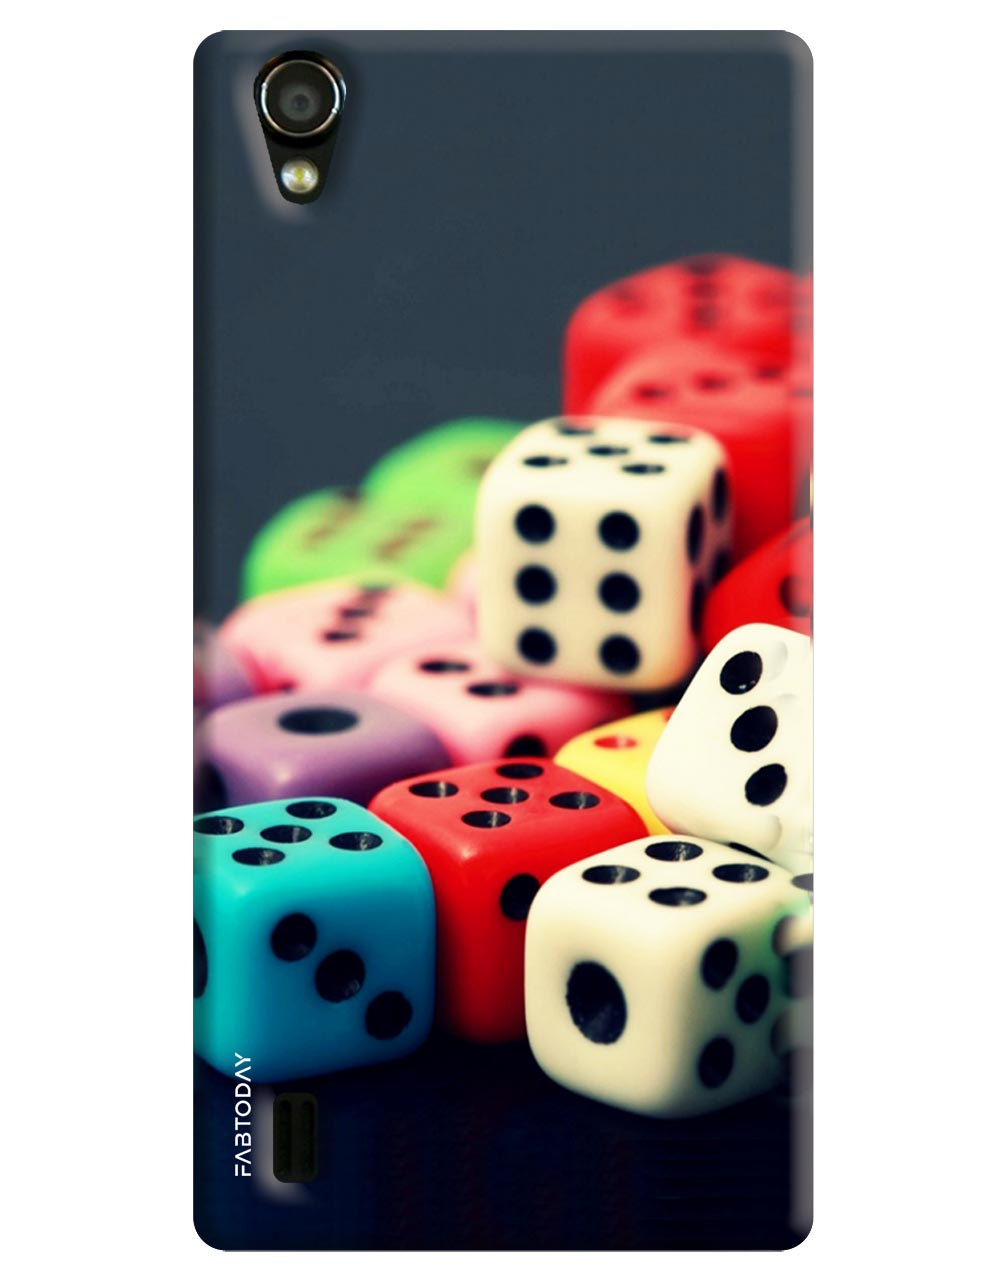 Dice Back Cover for Vivo Y15